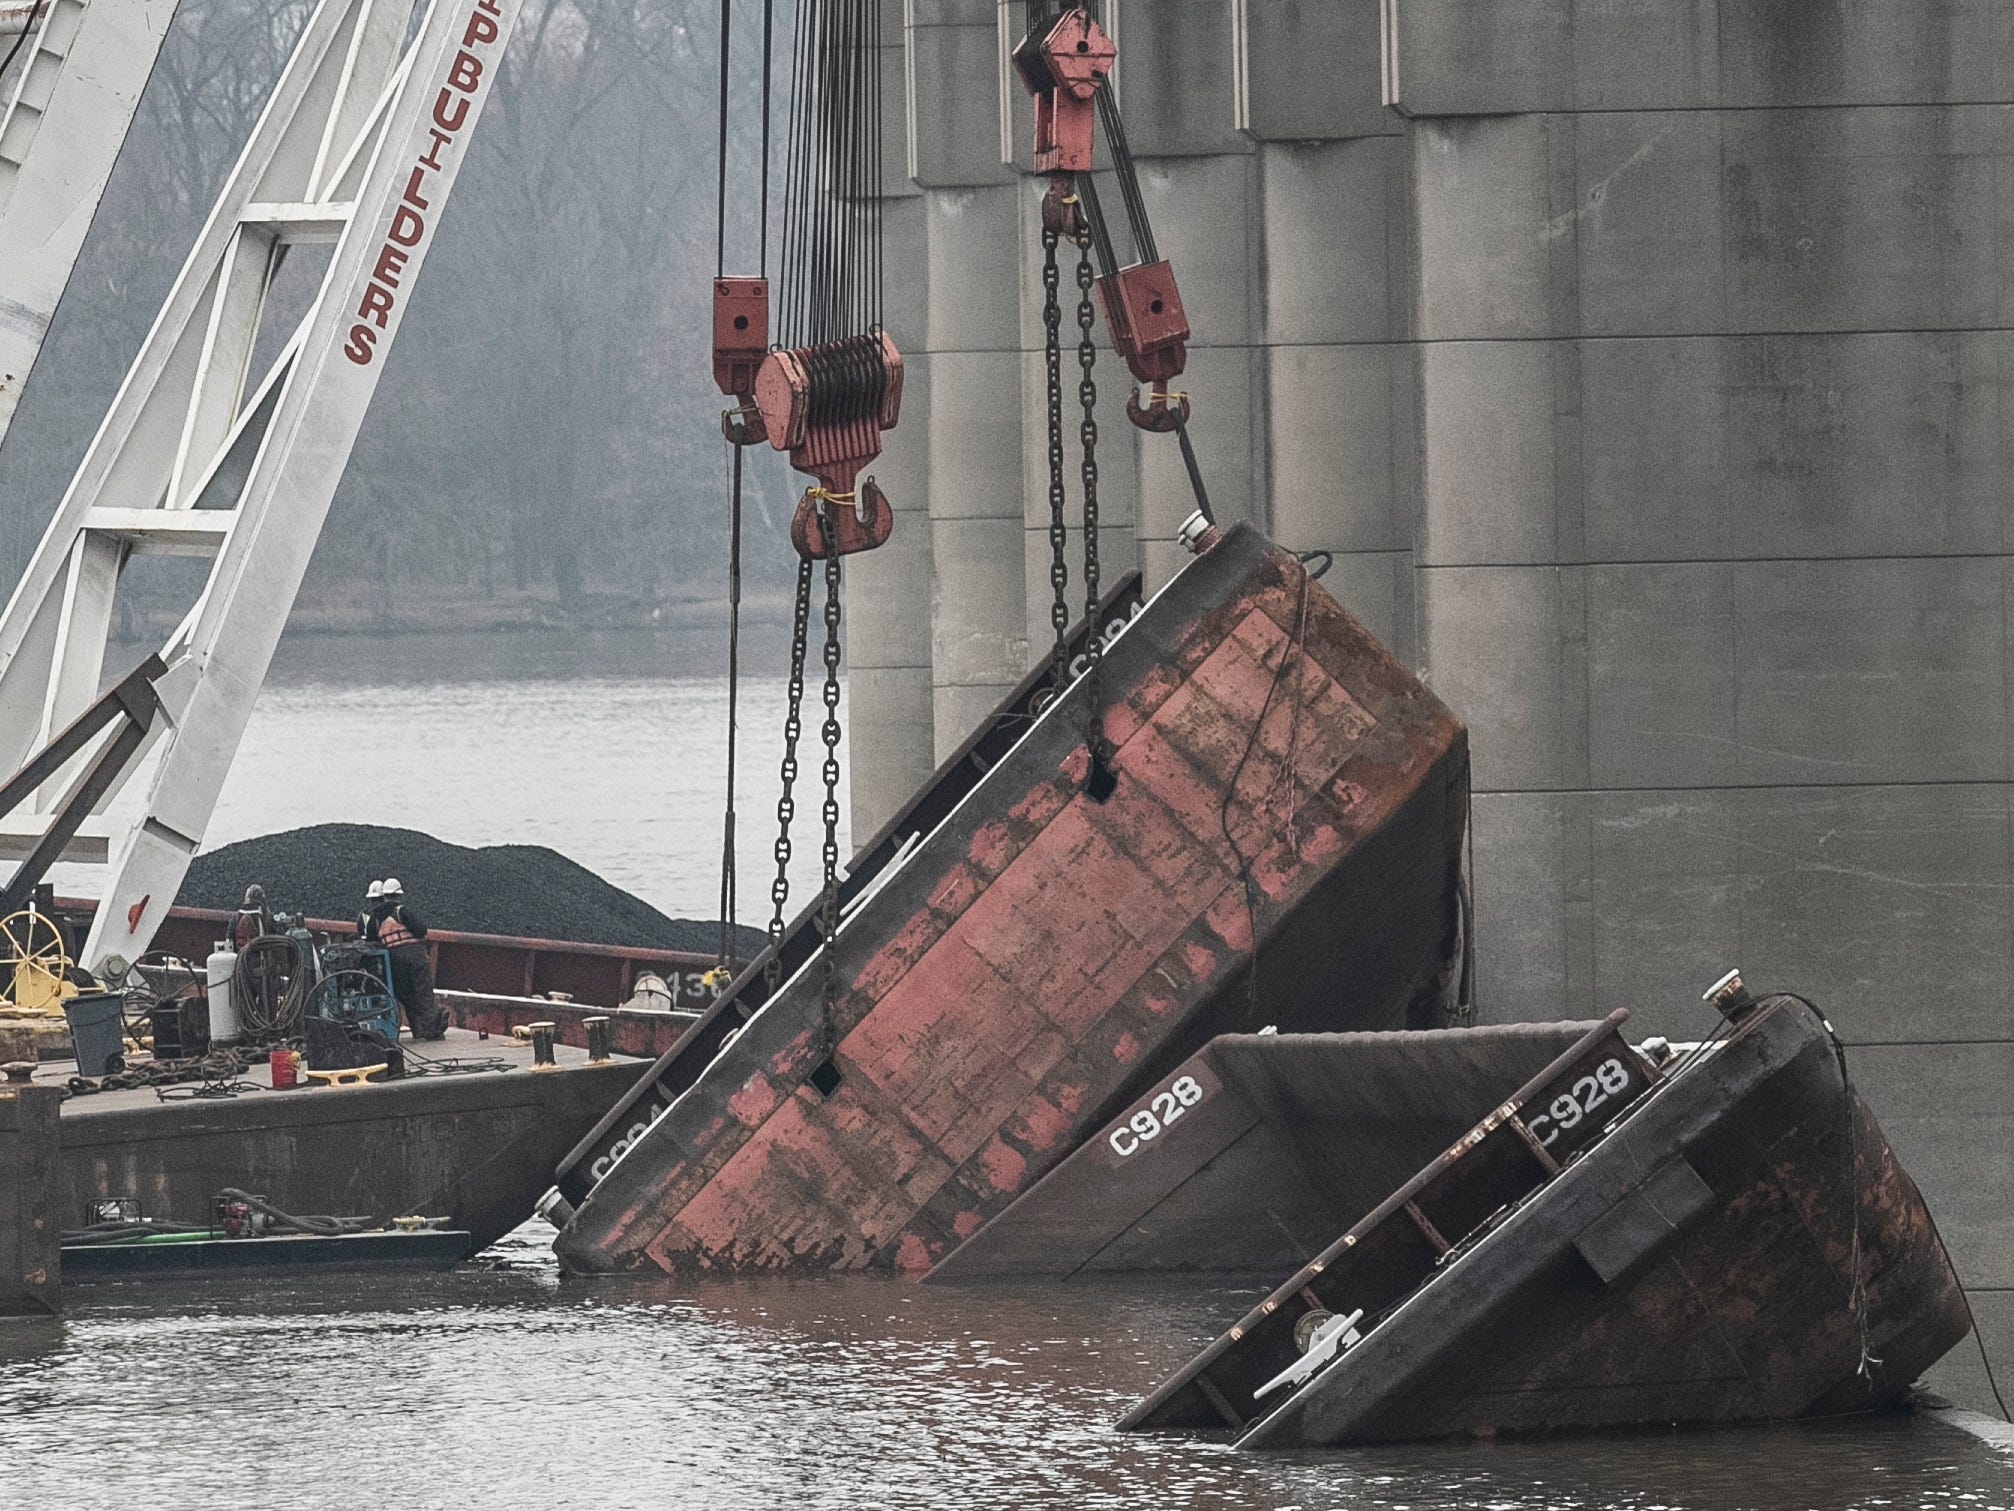 Work still continues on barge recovery near the dam at the Falls of the Ohio Wednesday, January 16, 2019. Seven barges have sunk since the night of Dec. 25, when a barge hit the Clark Memorial Bridge as it was being towed upstream. The crash caused 15 barges to break loose from the towing vessel and float downriver to the dam.